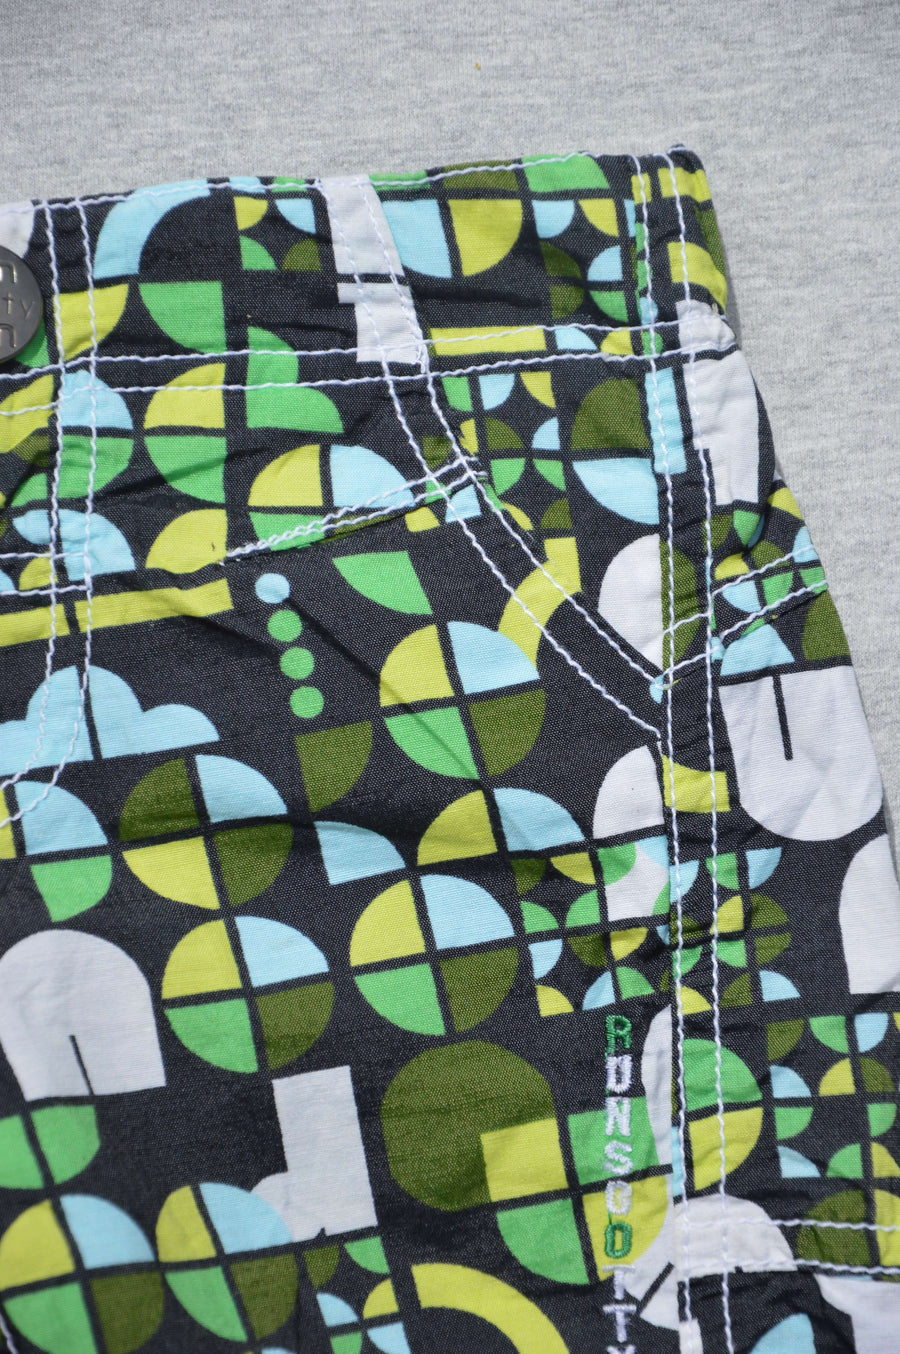 Run Scotty Run - nearly new - black & green patterned shorts, size 3-6m